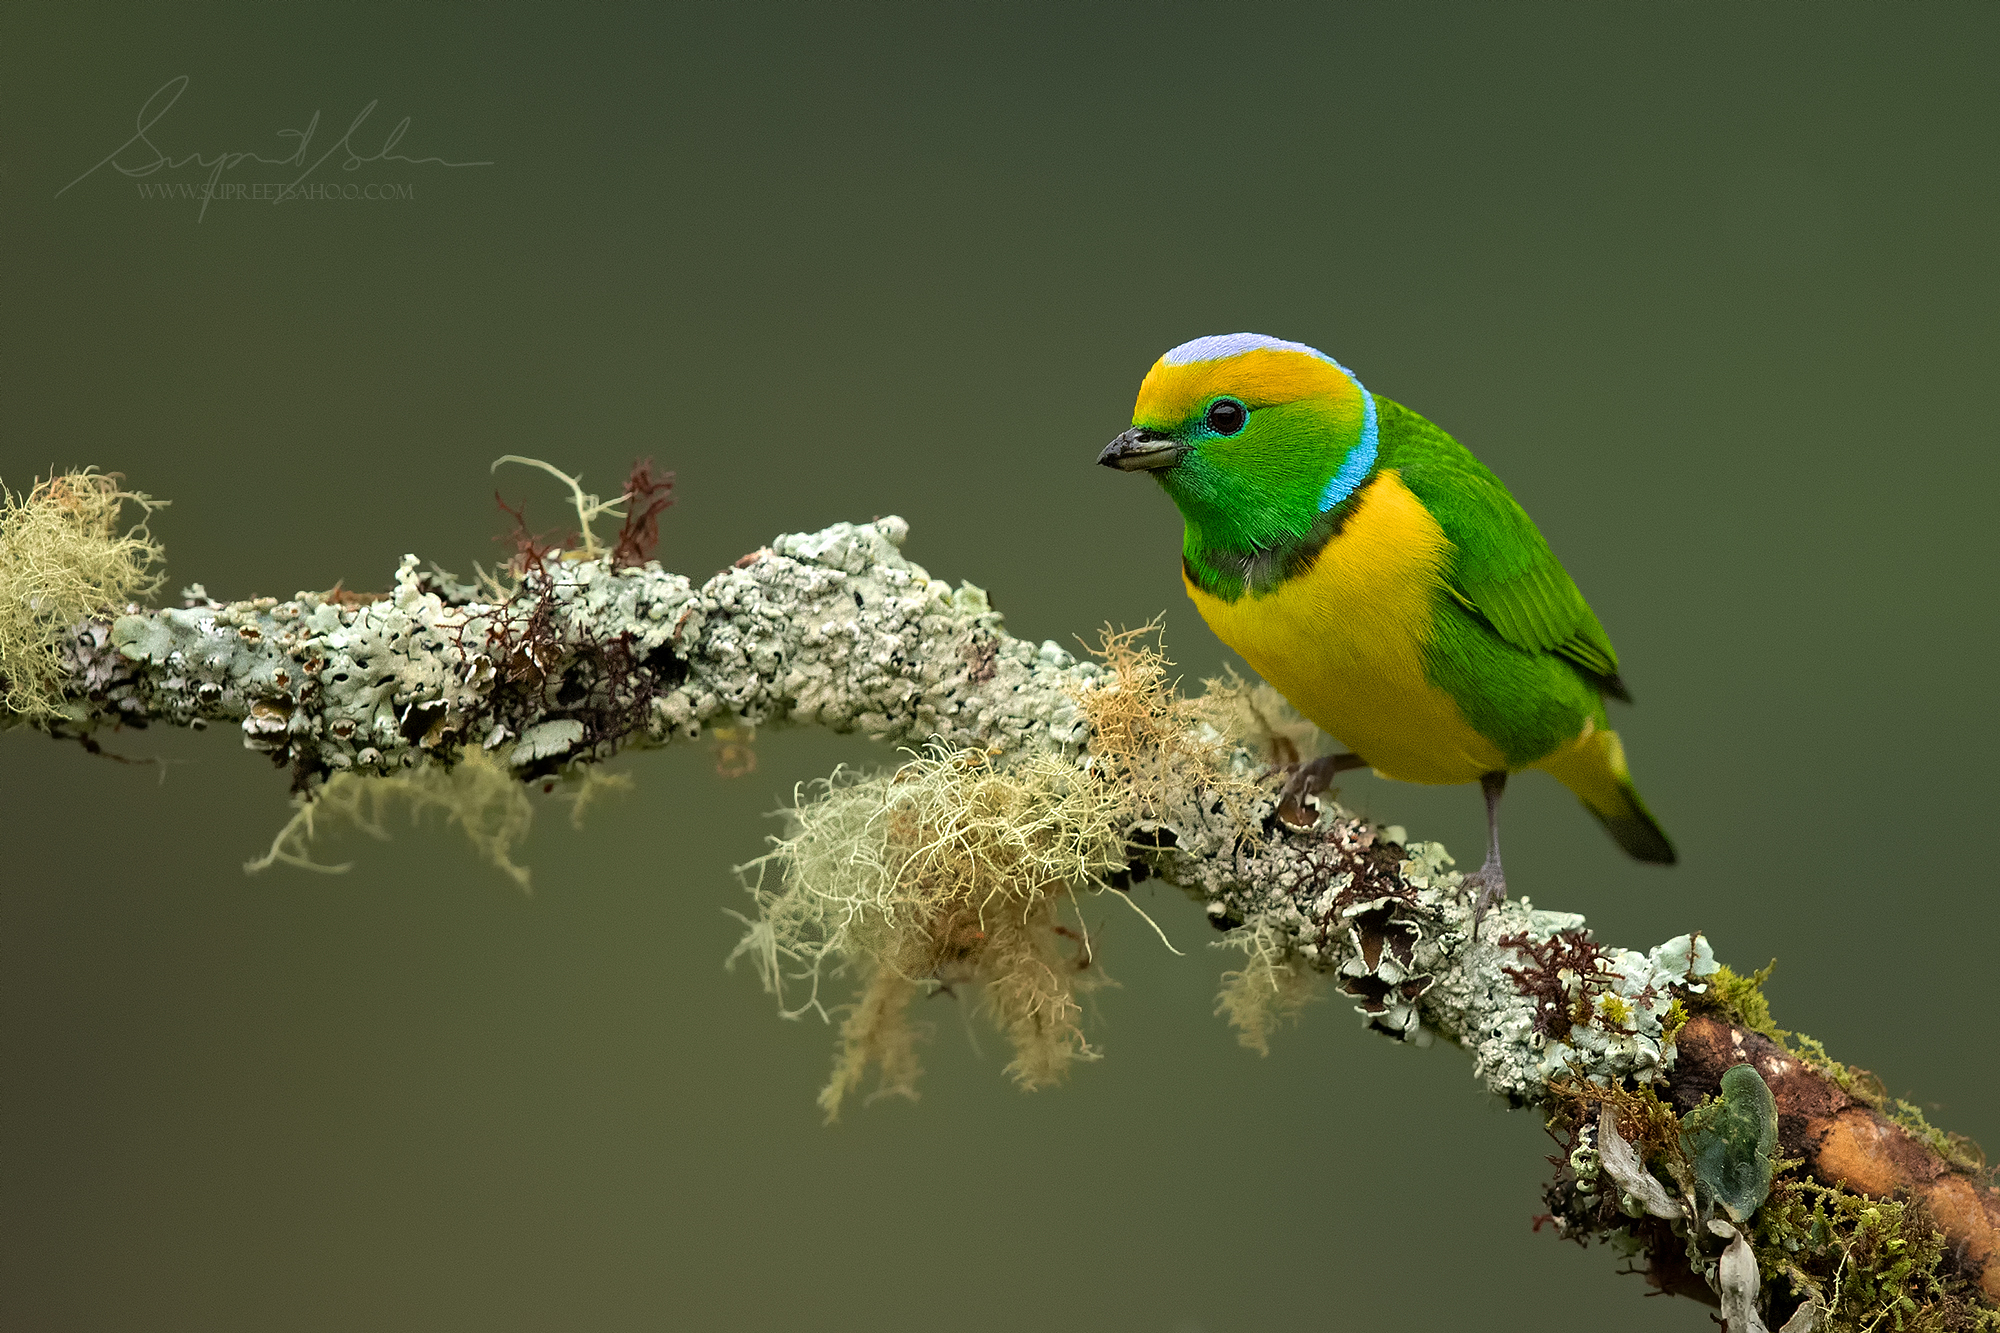 Golden browed chlorophonia